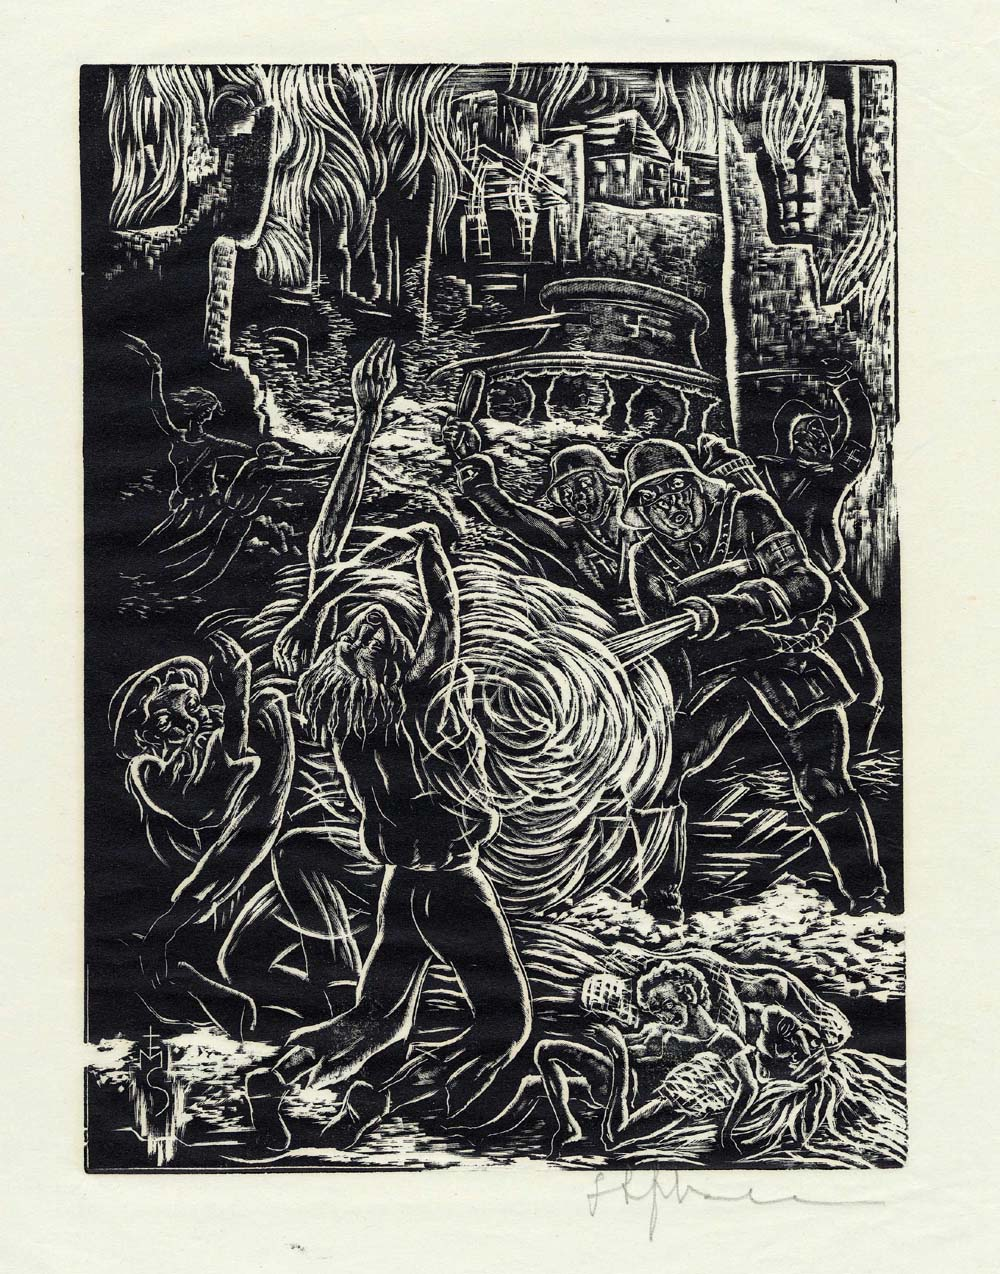 ''Desperation and Death'', woodcut print by Stefan Mrozewski